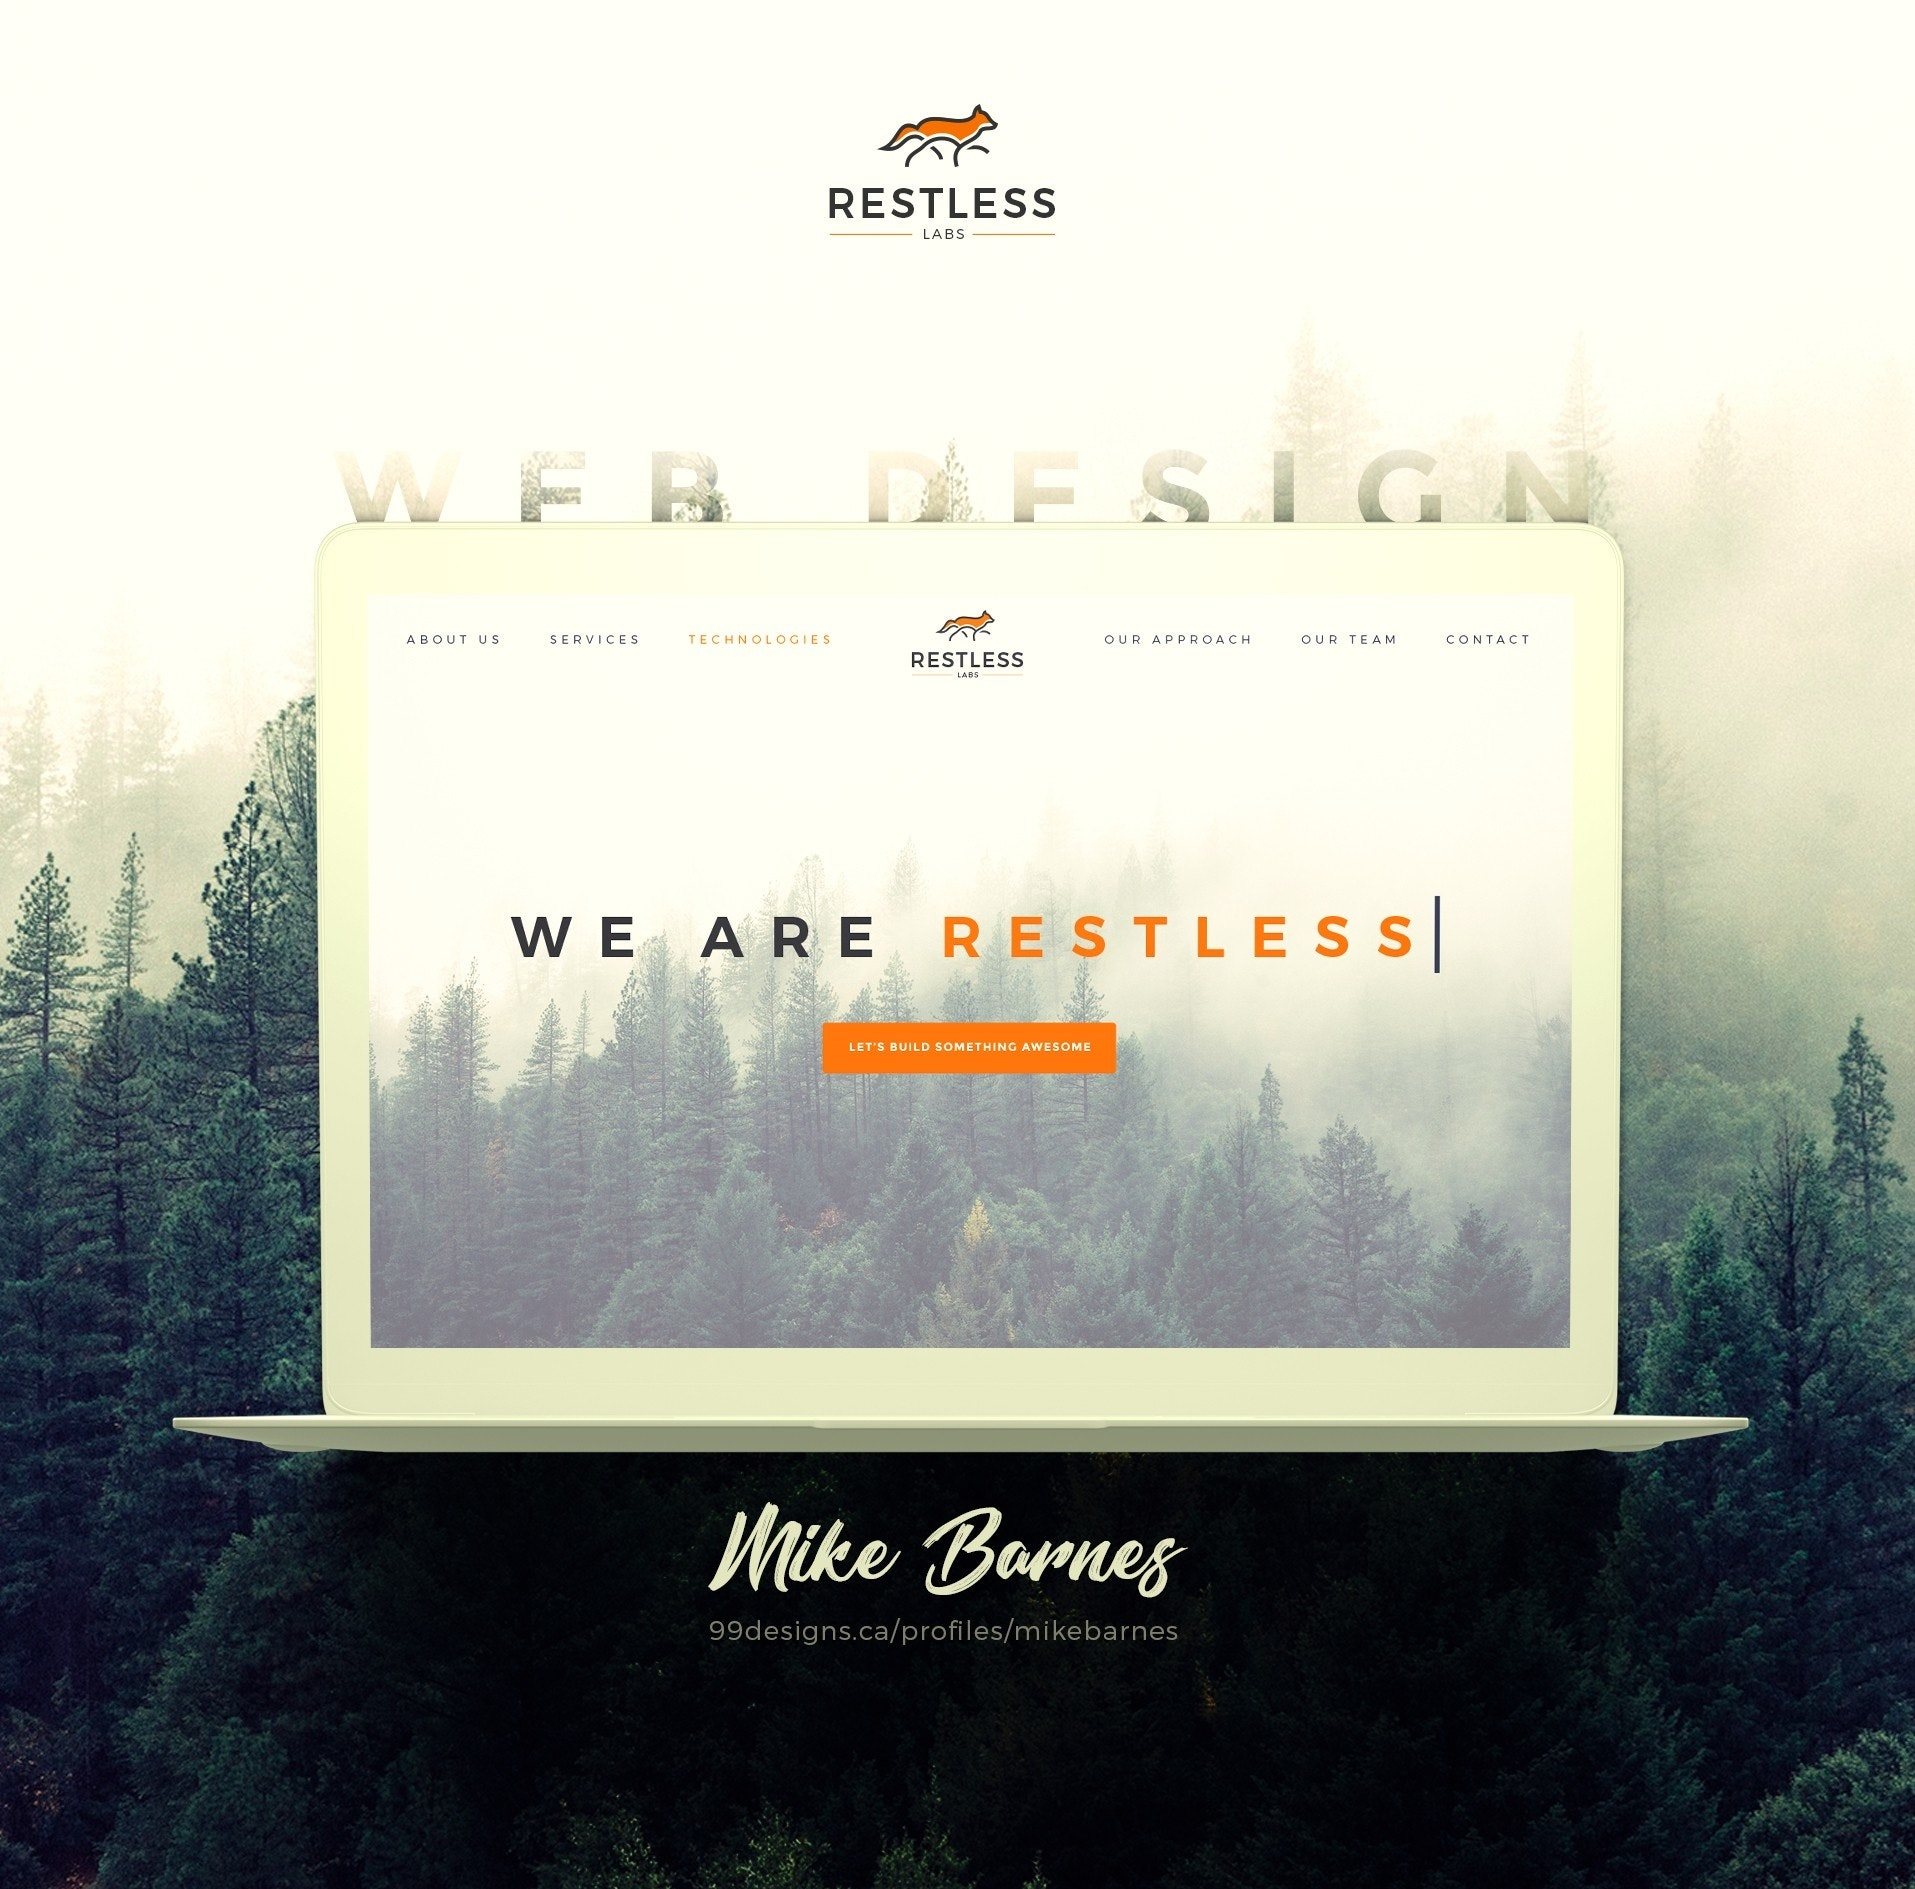 Restless Labs web design